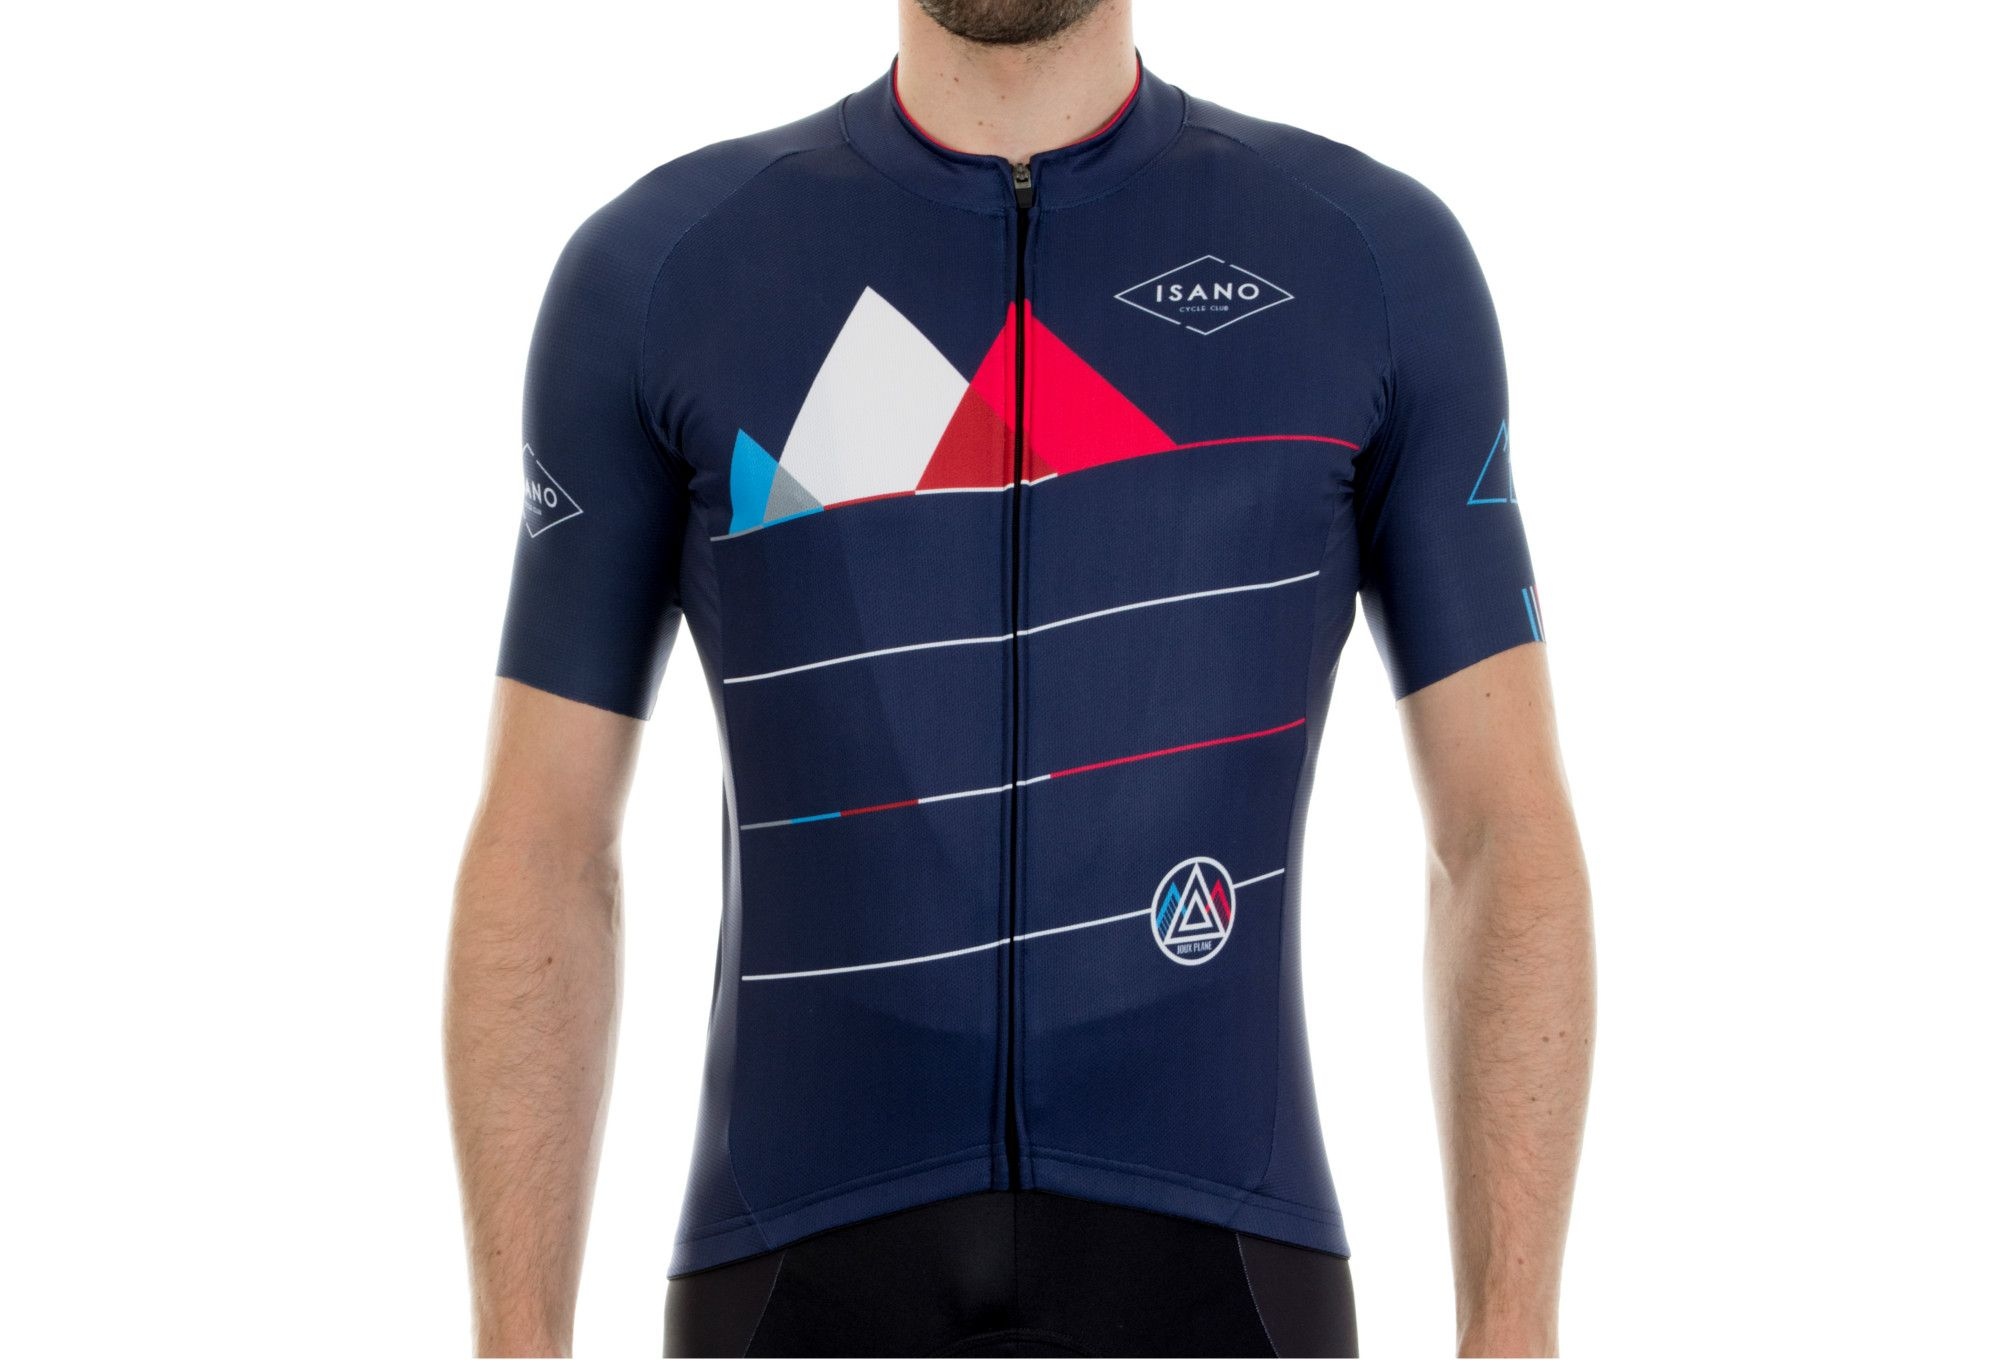 Cycling Wear Maillot Manches Courtes Isano Joux Plane Bleu Cycling